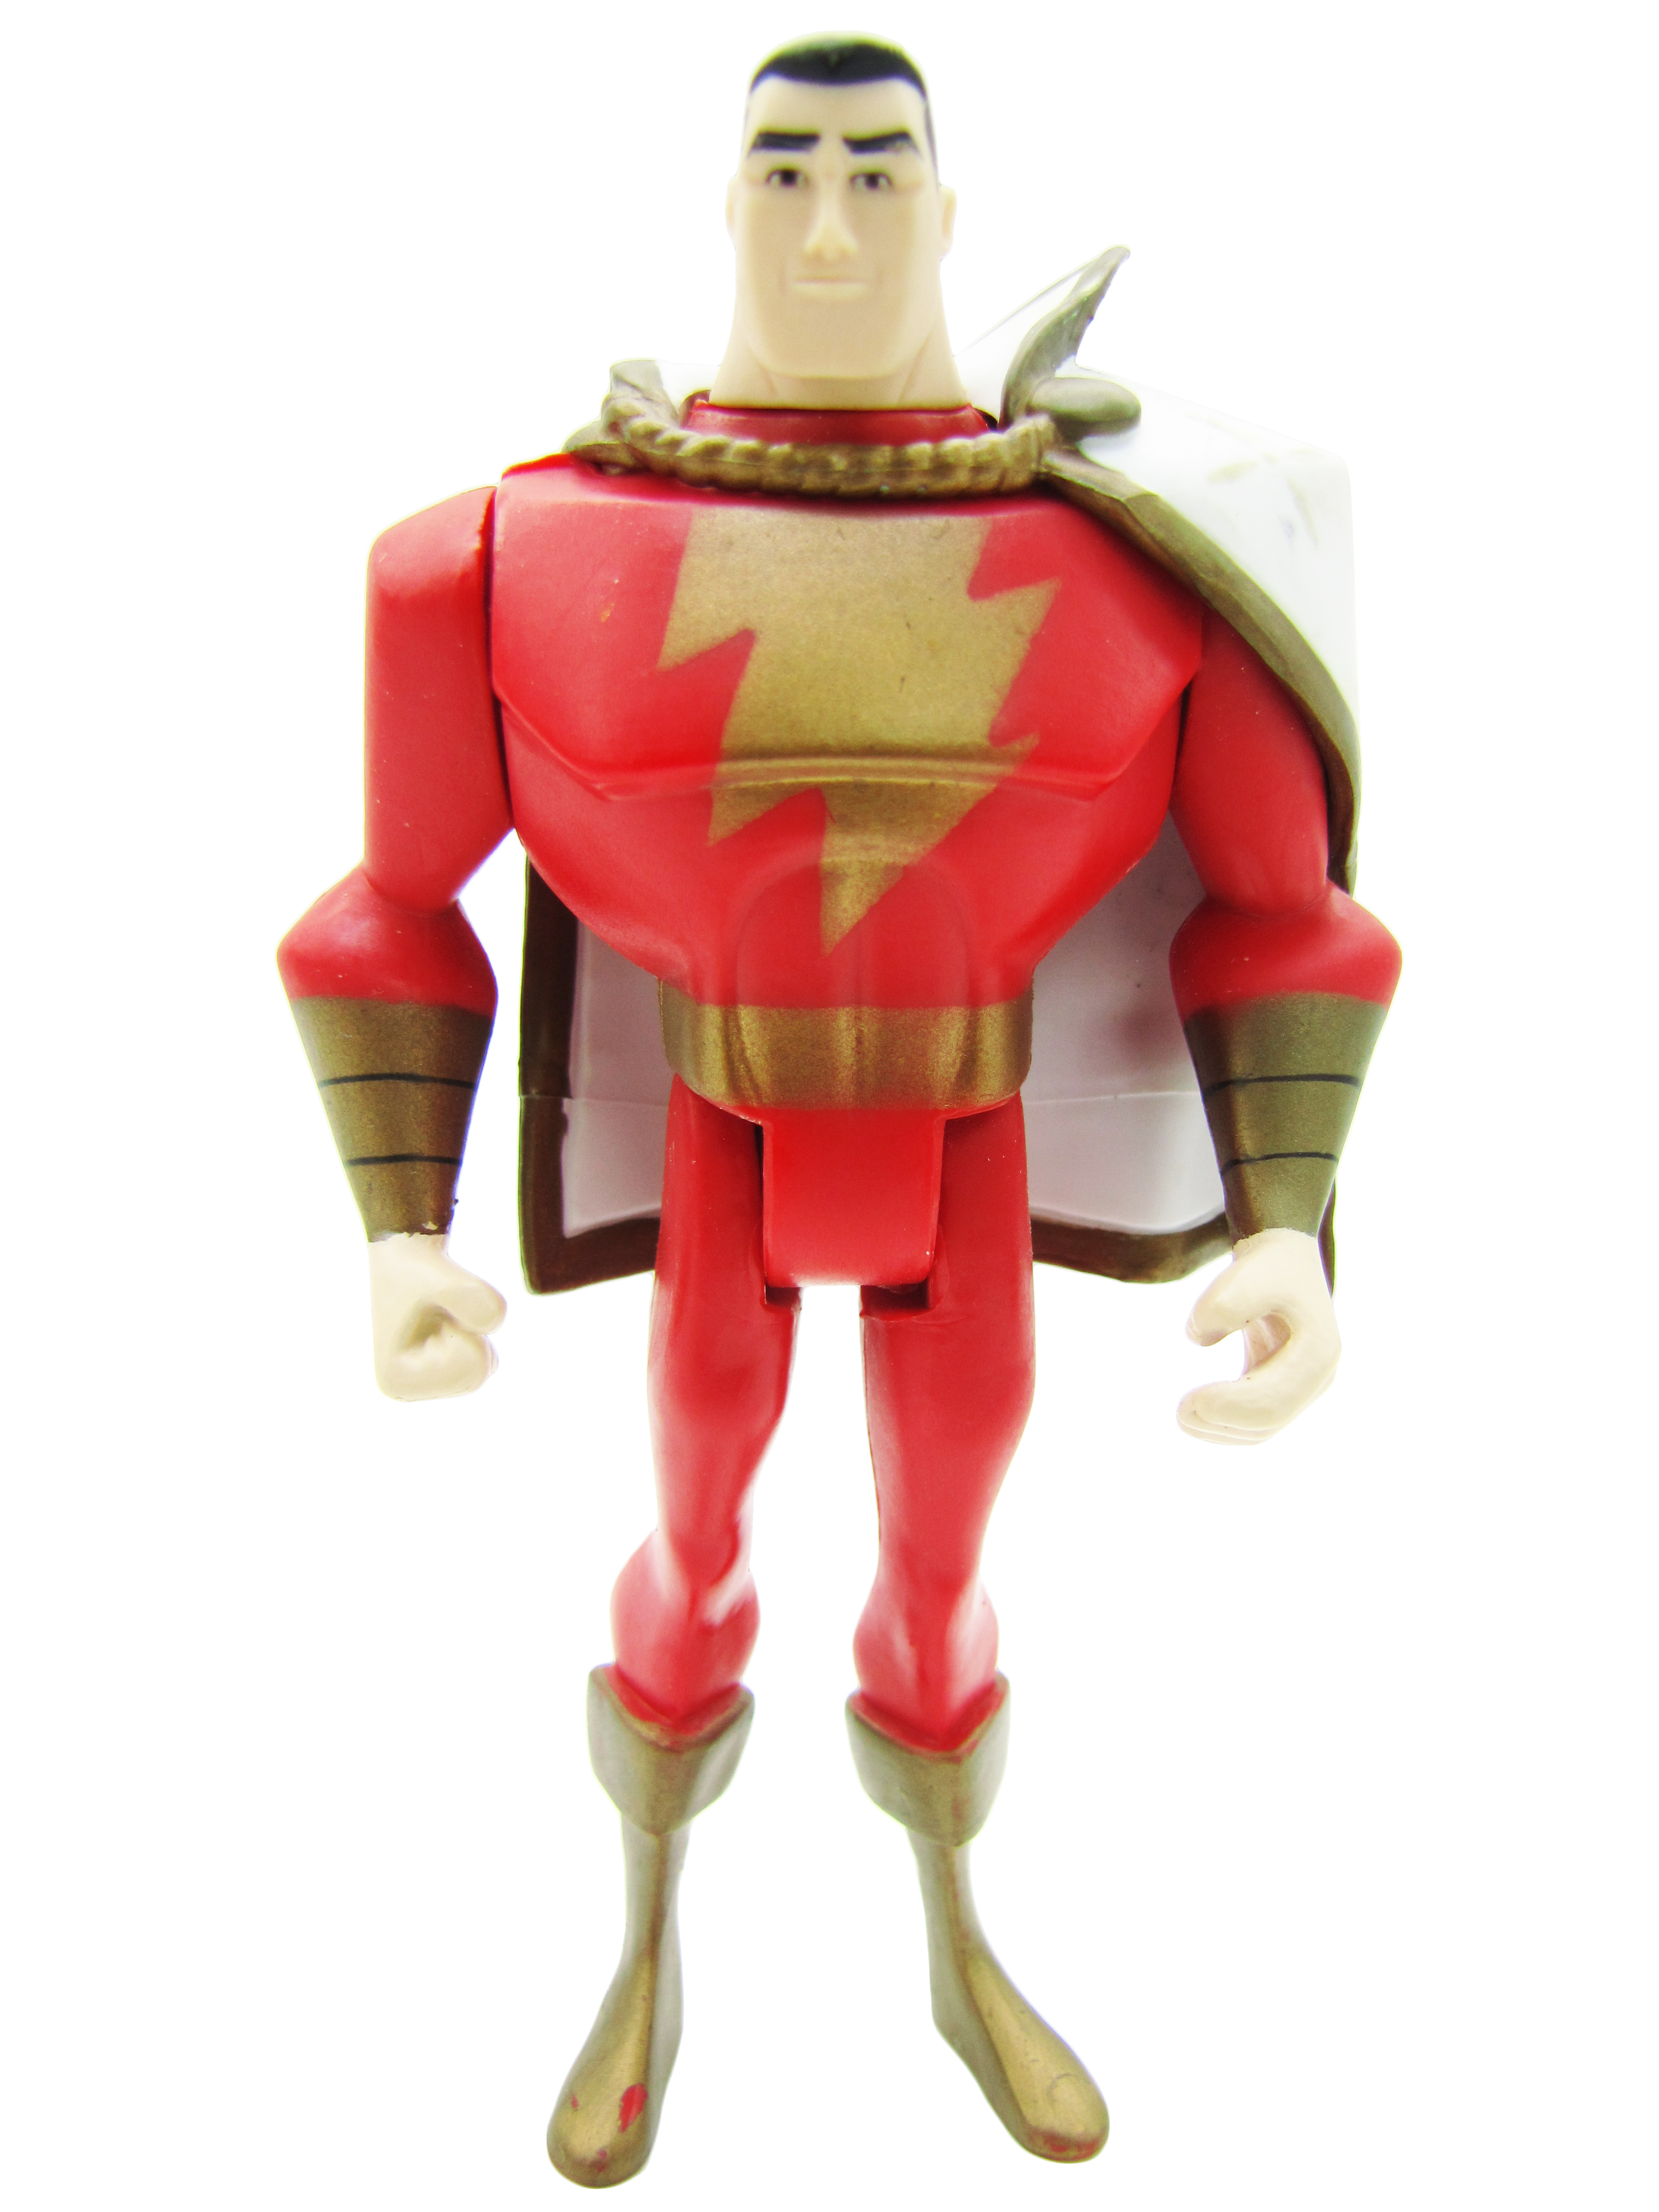 2008 Justice League Unlimited MATTY COLLECTOR SHAZAM FAMILY SHAZAM Mint